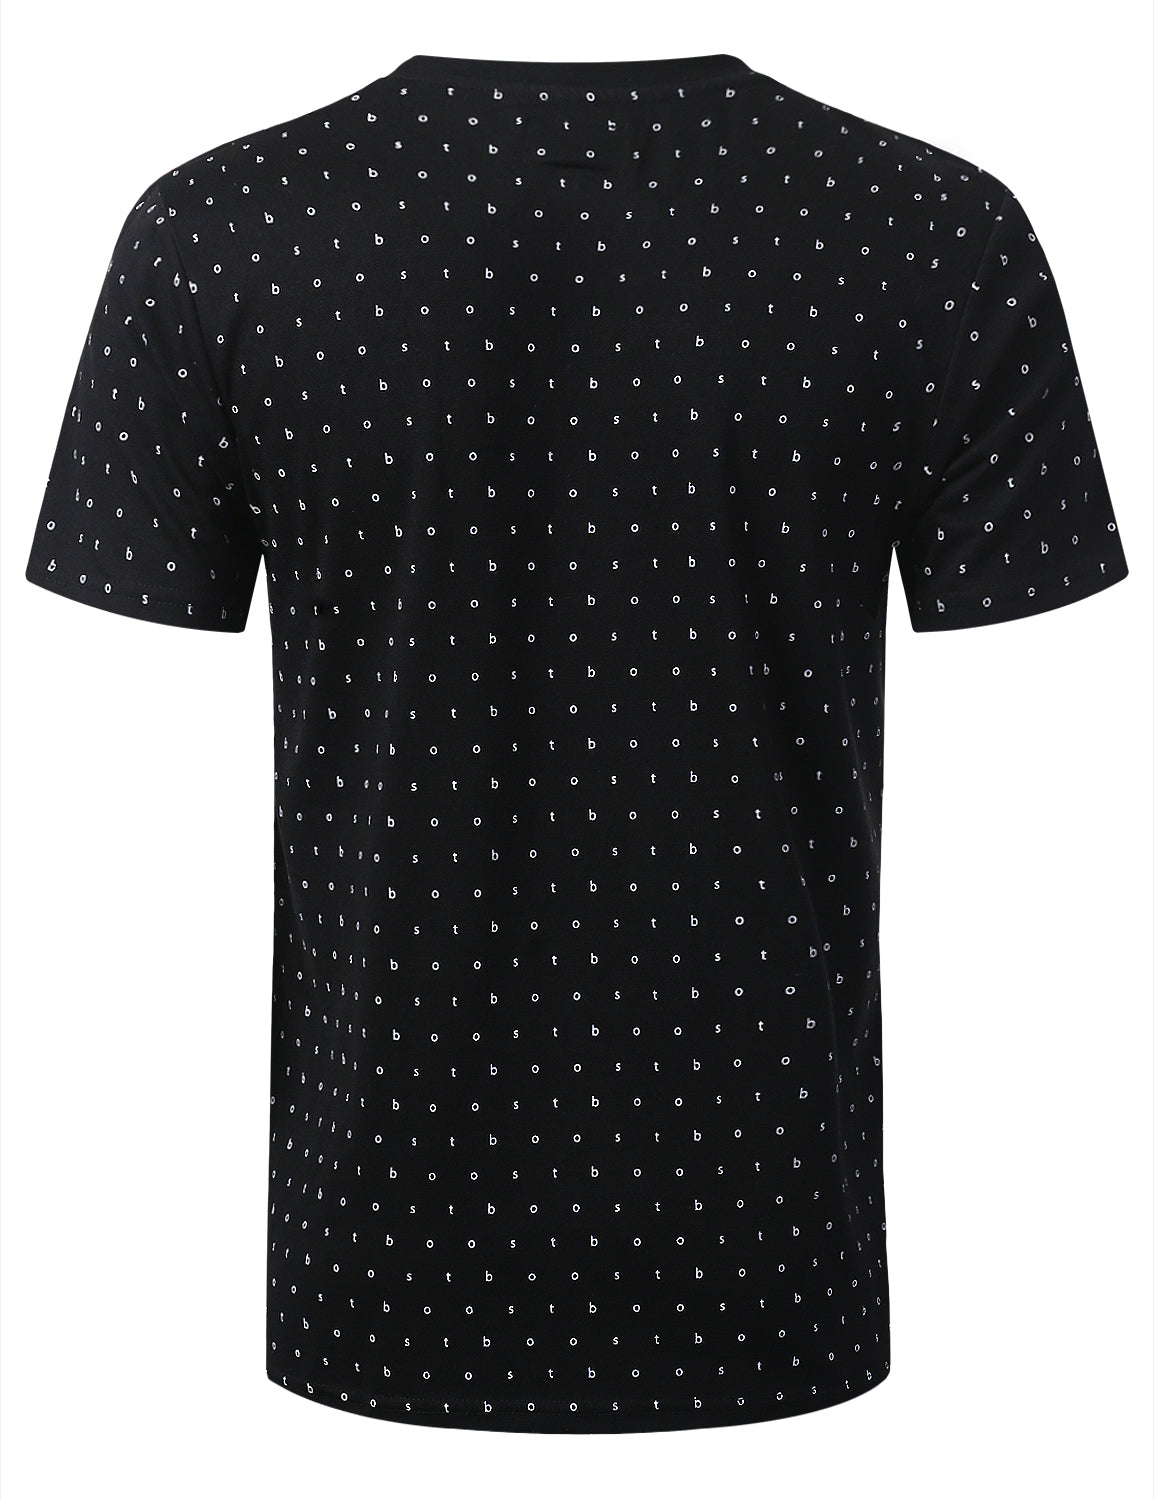 BLACK BOOST LIFE Pattern Print Graphic T-shirt - URBANCREWS